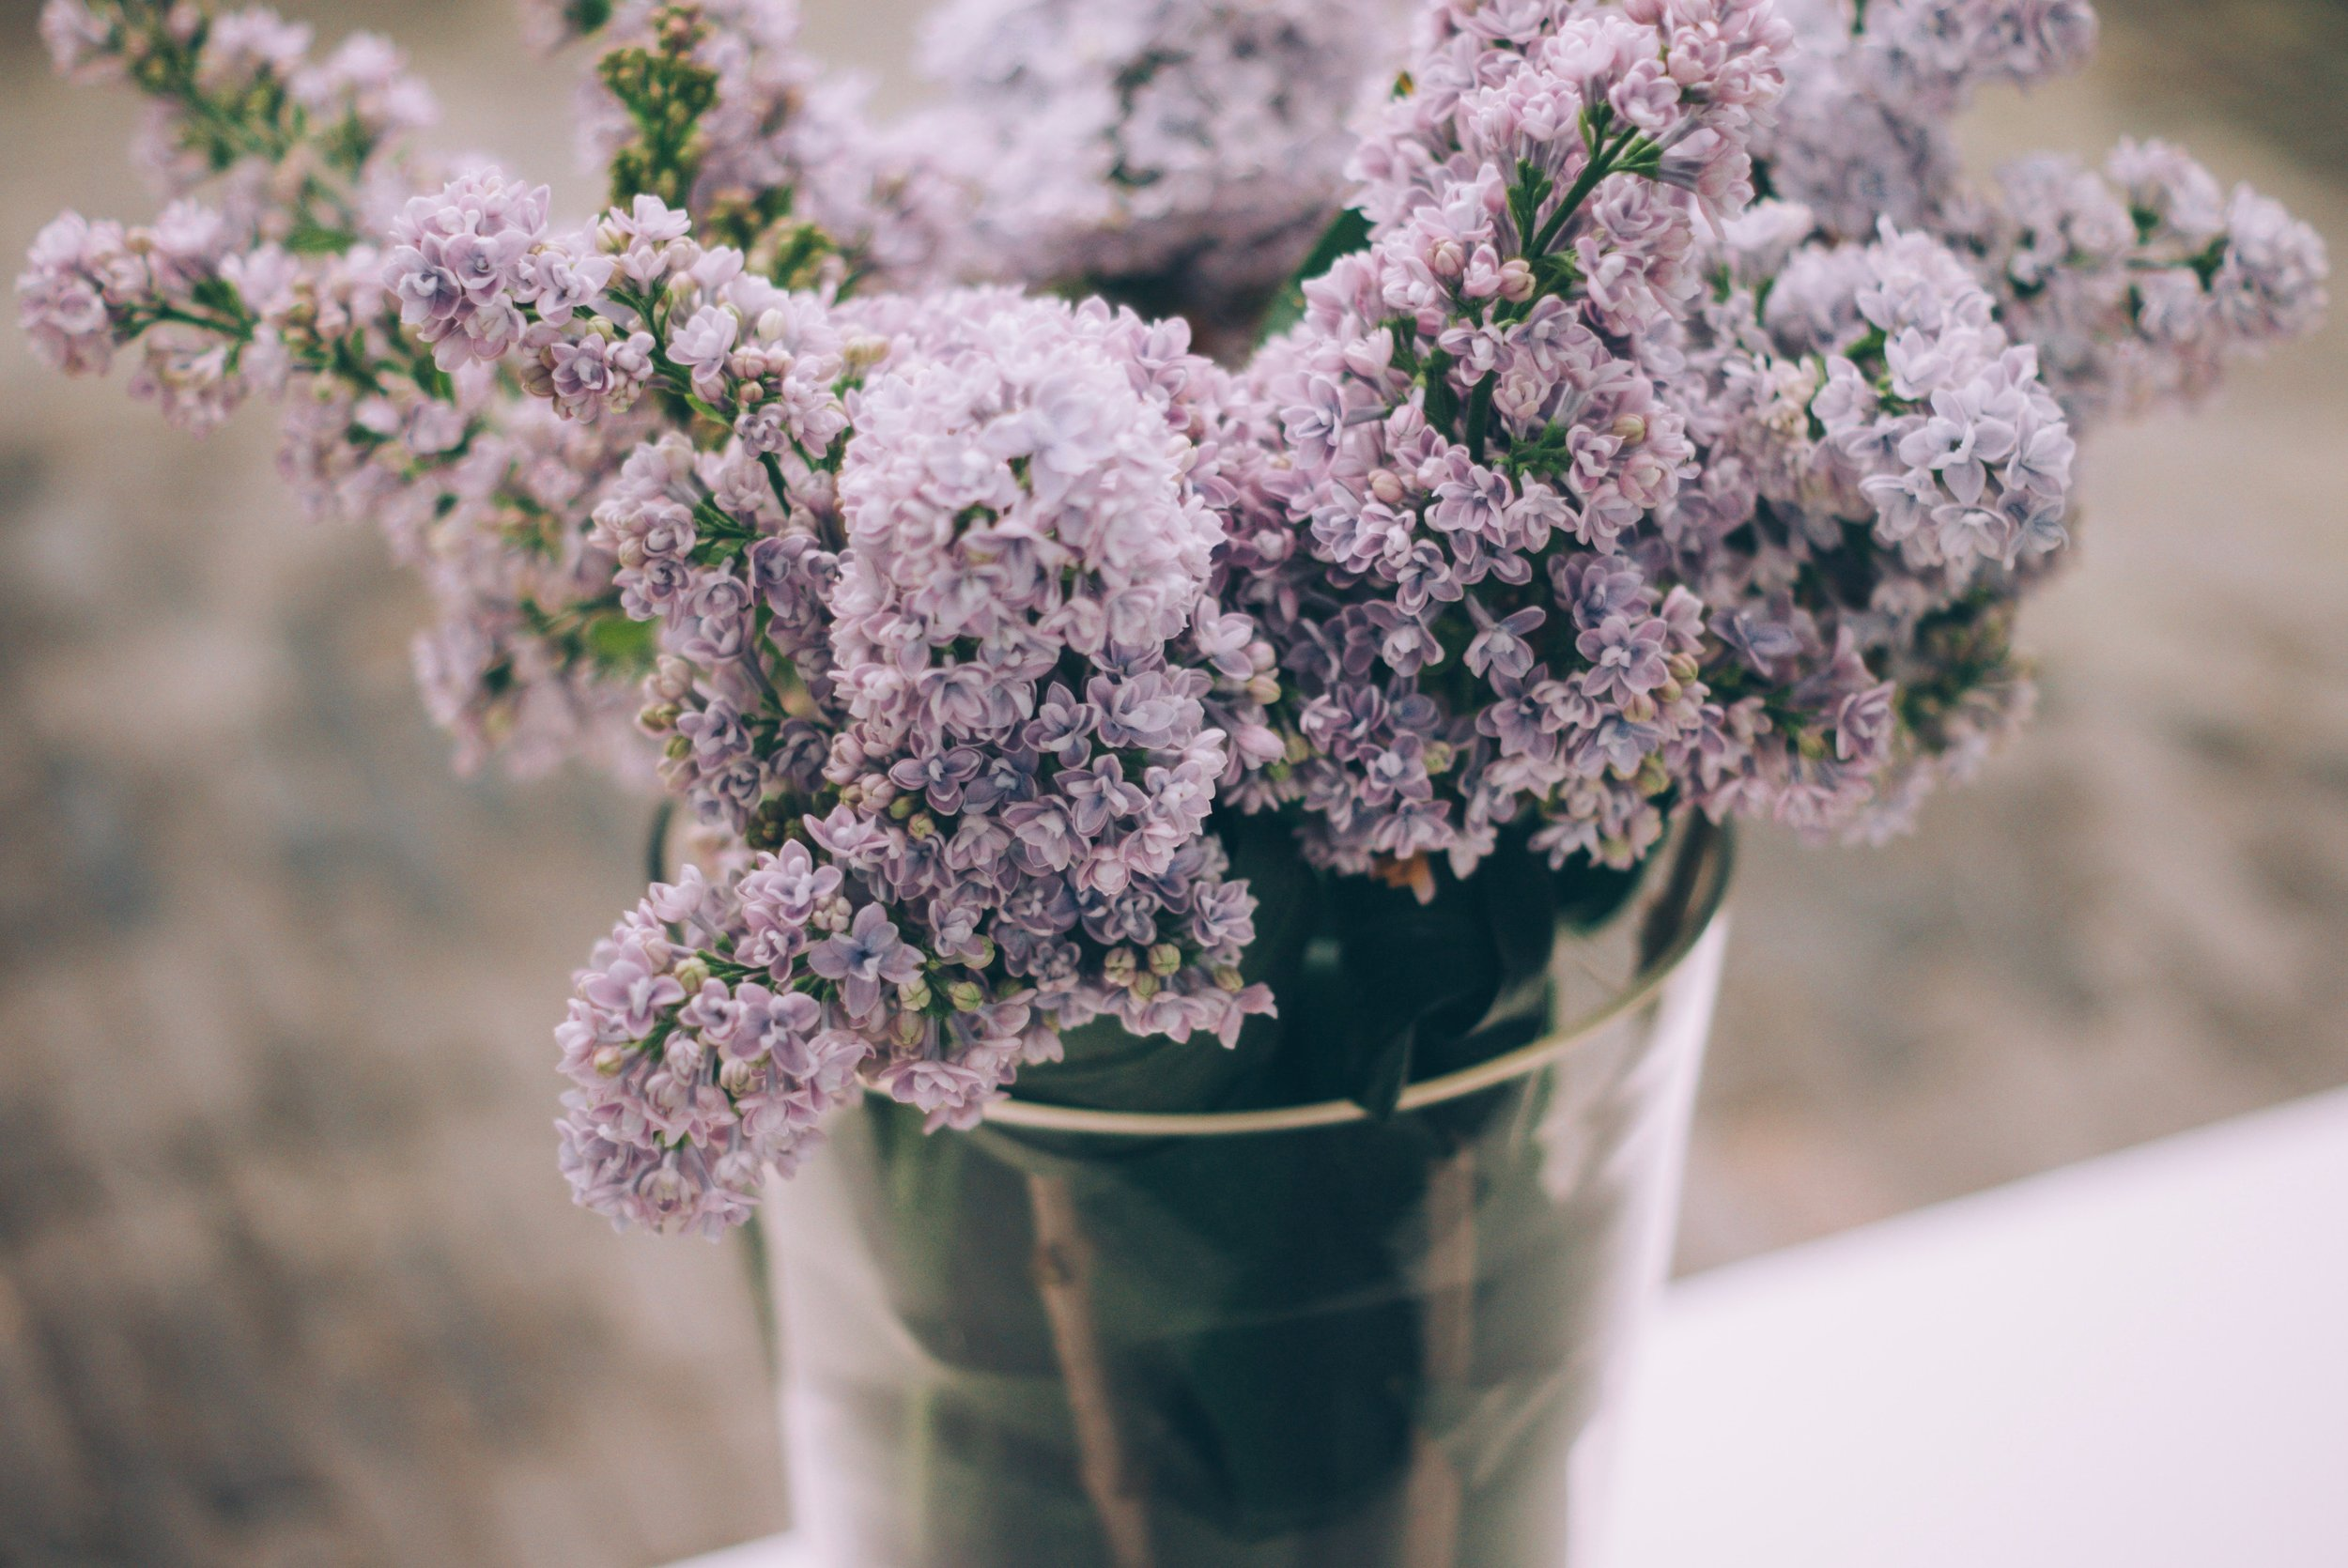 List of spring flowers lilac.jpg